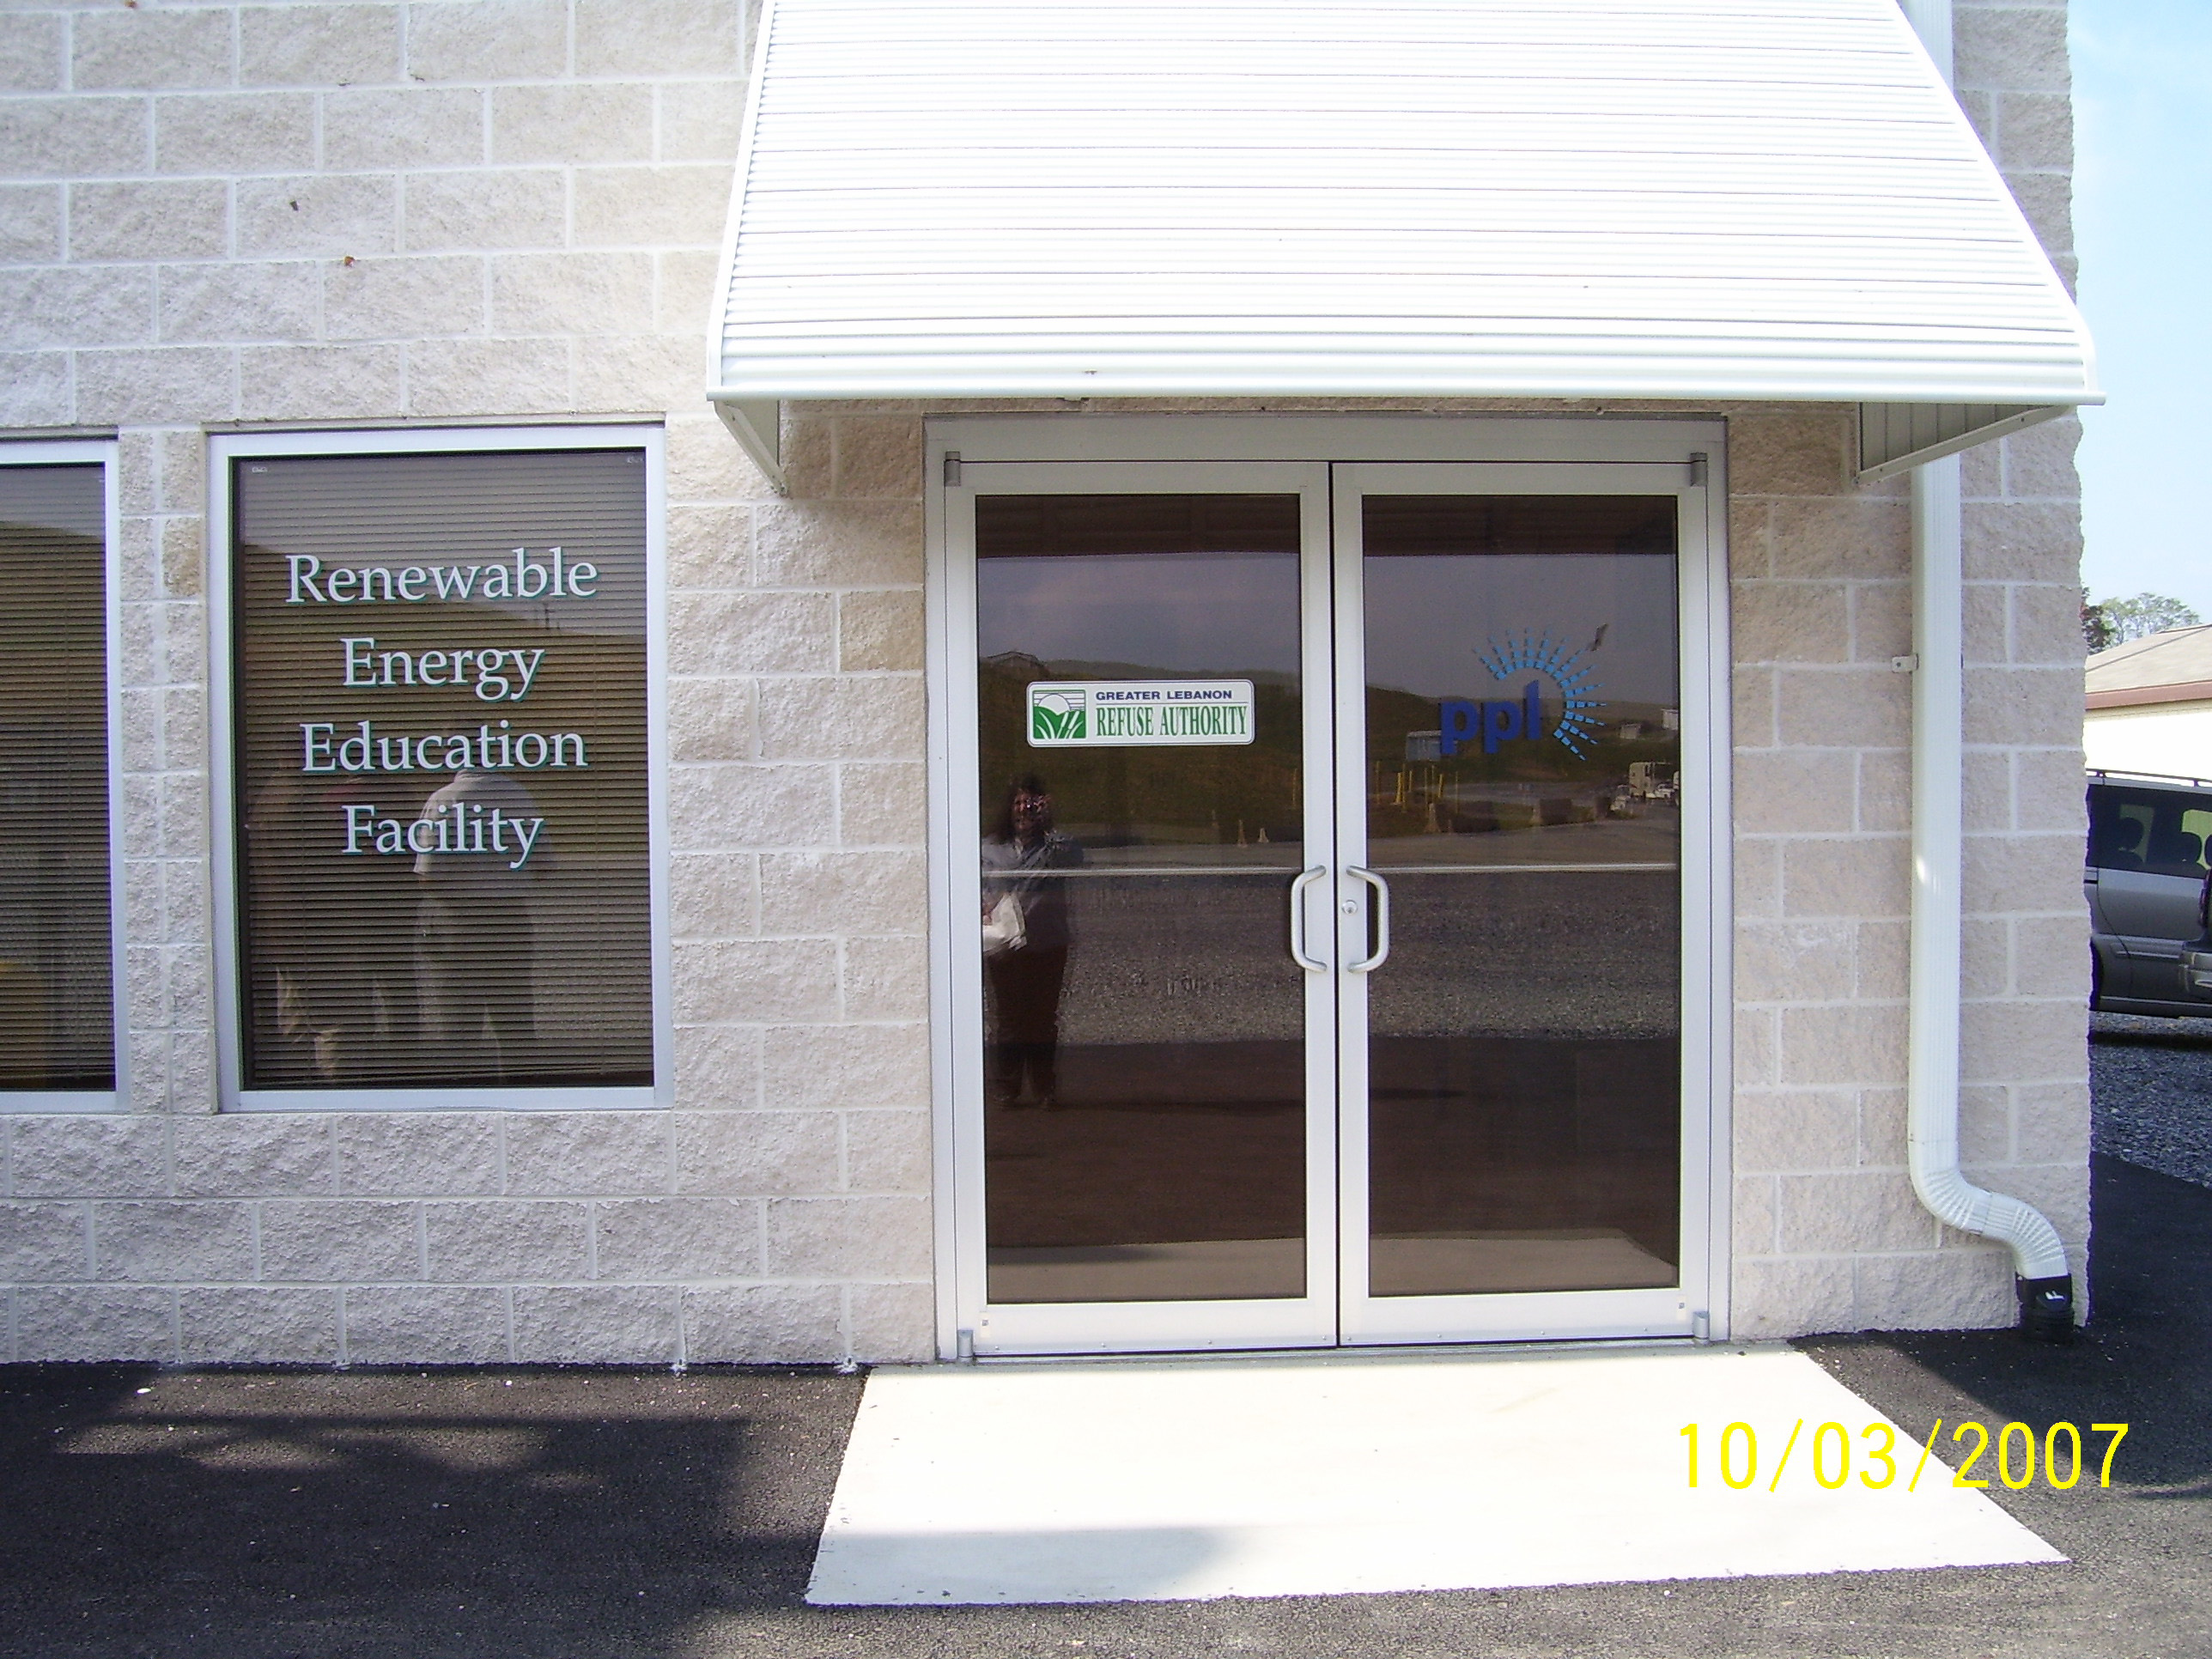 The Renewable Energy Education Facility entrance